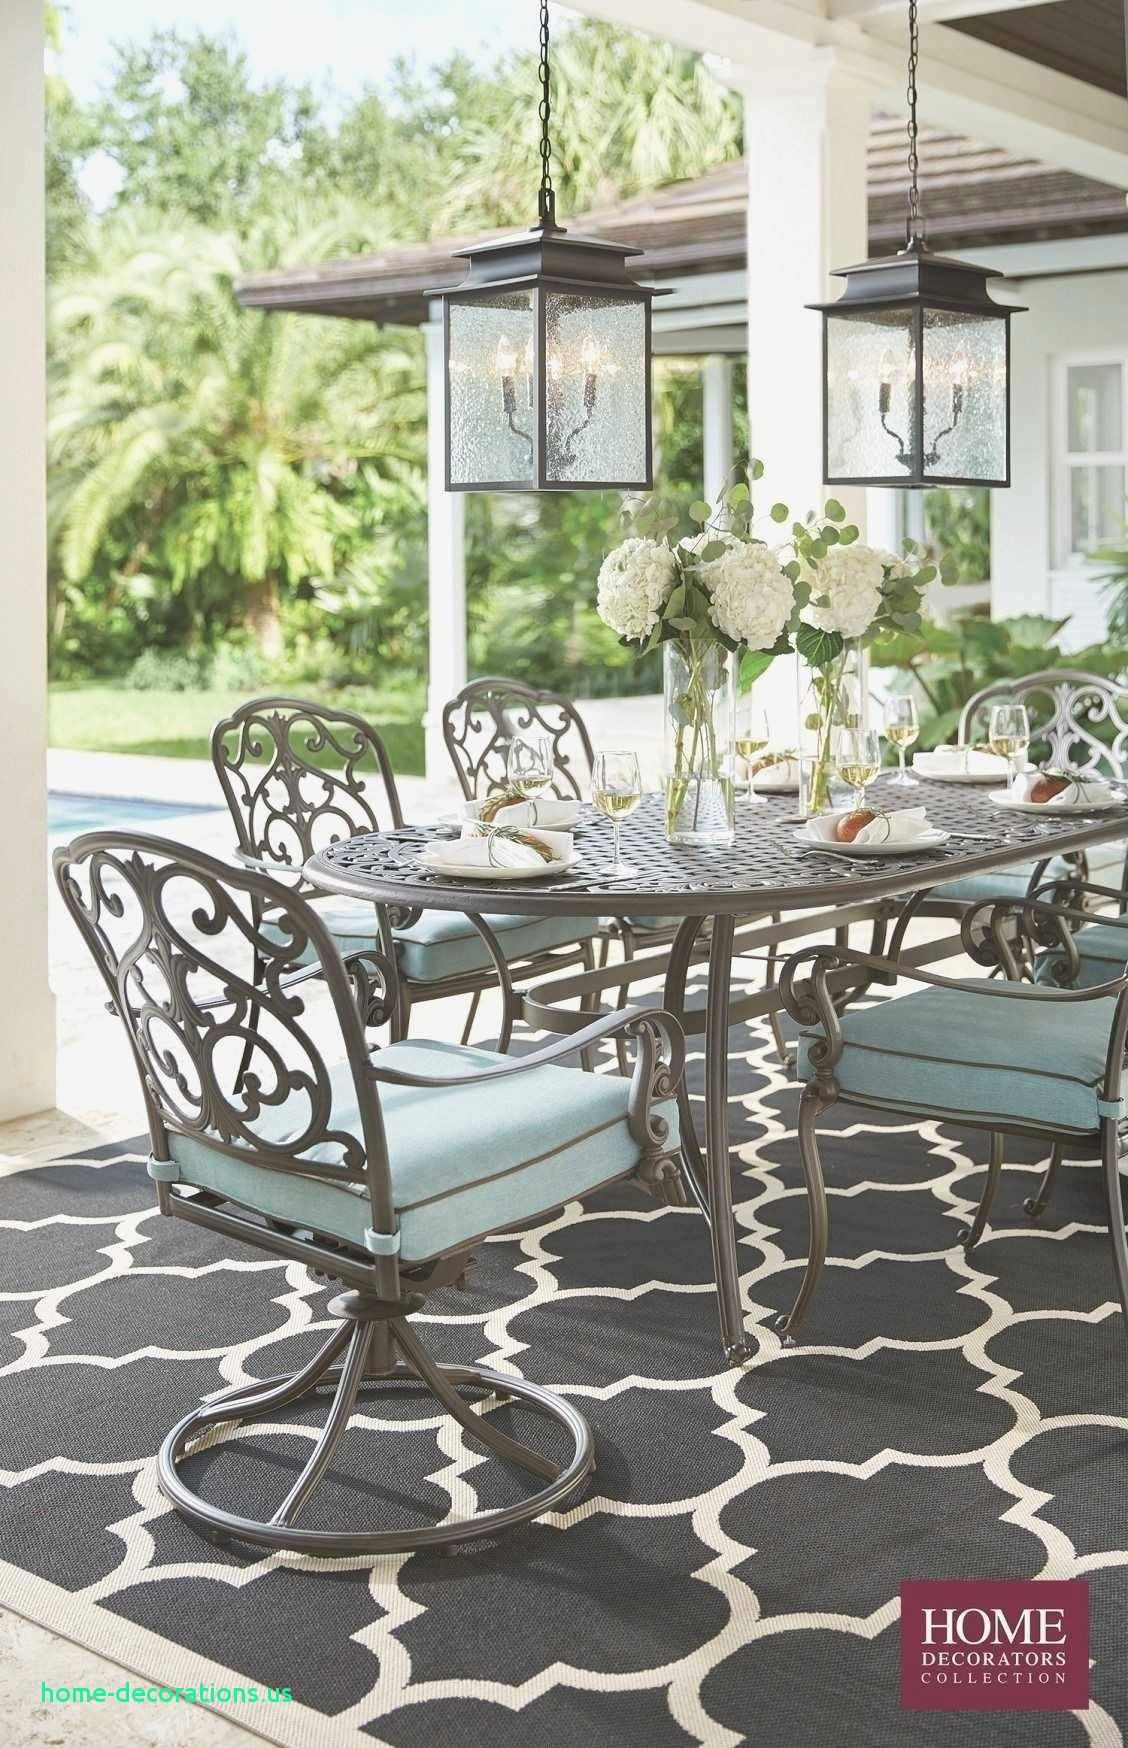 Awesome Home Decorators Coupon Code